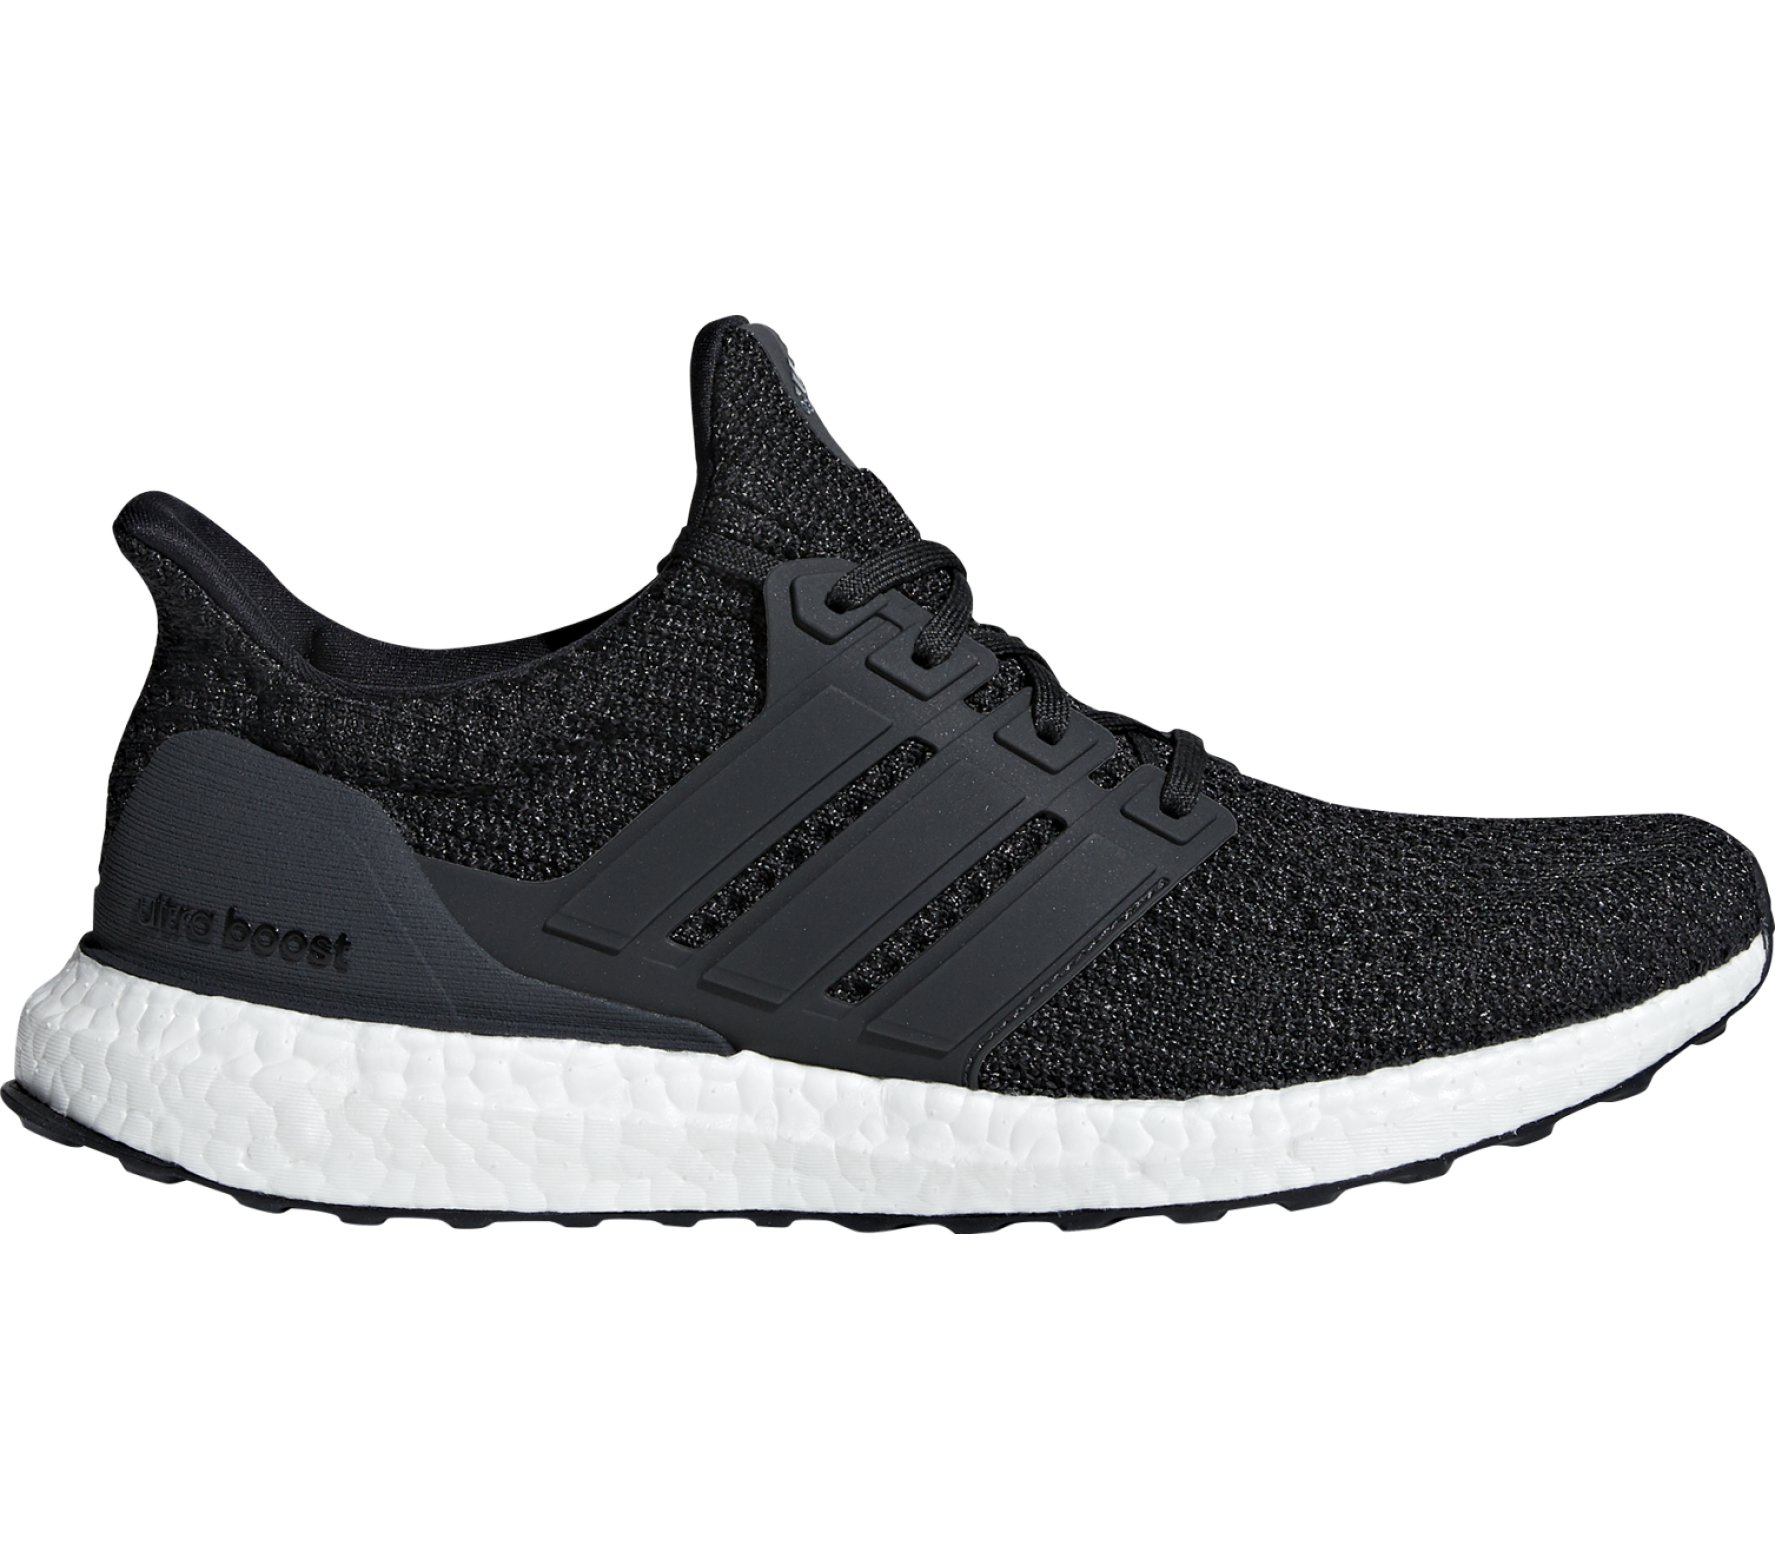 adidas performance ultraboost herren laufschuh schwarz. Black Bedroom Furniture Sets. Home Design Ideas